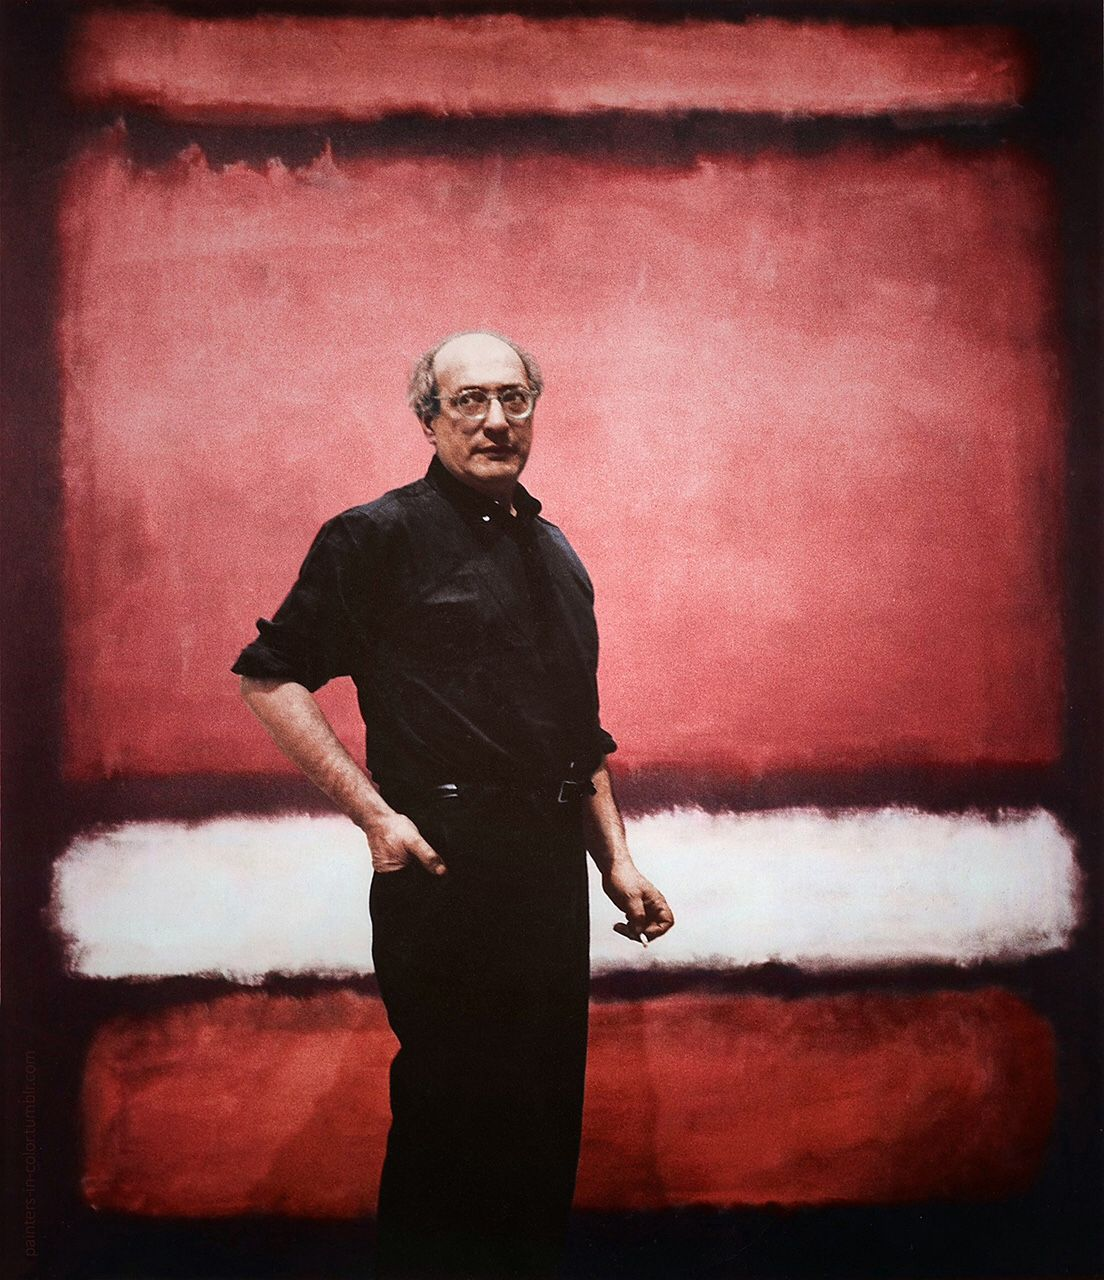 Rothko-New-portrait-photo-color